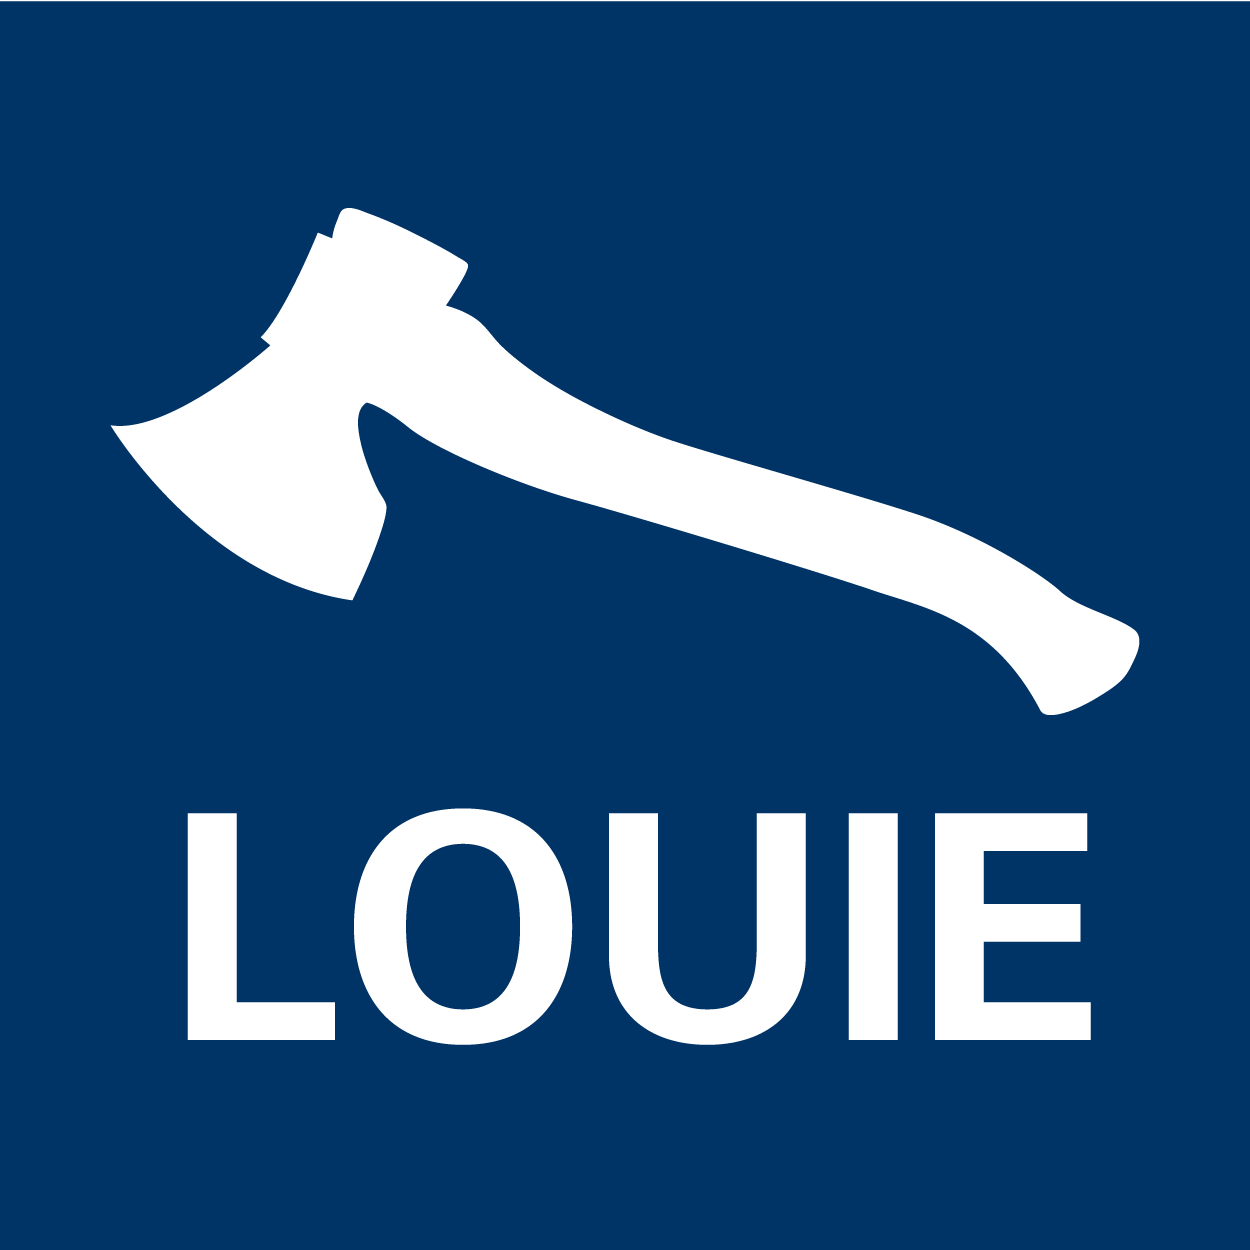 Access LOUIE